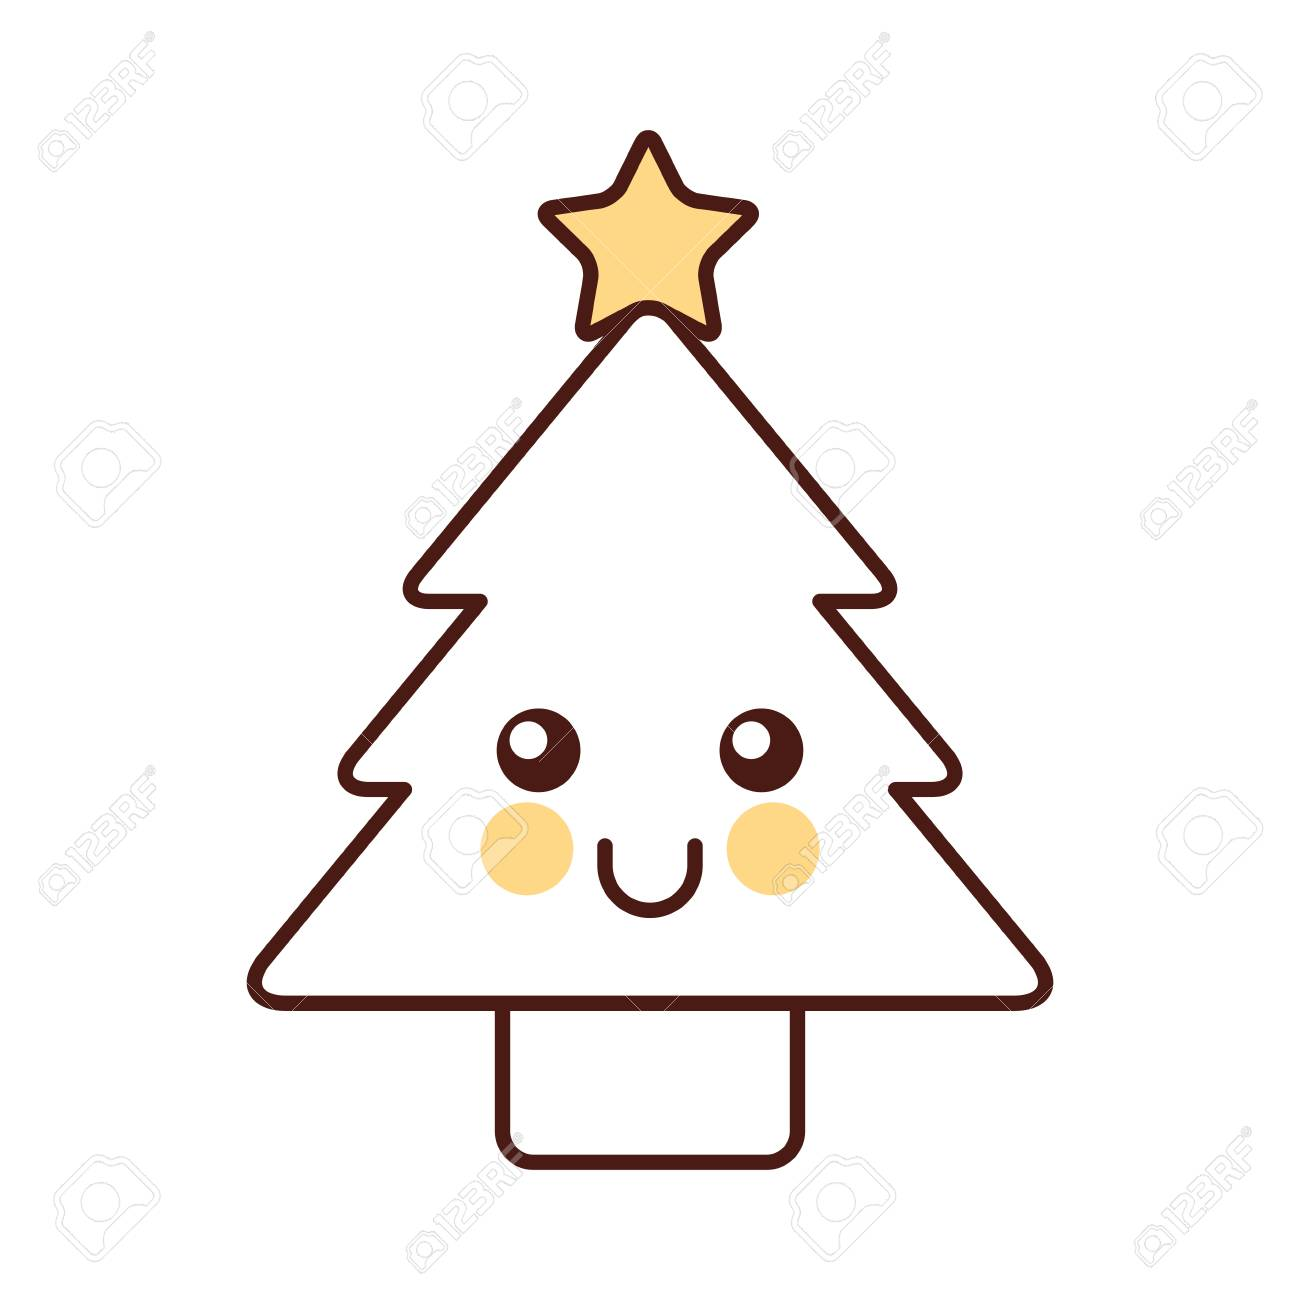 Kawaii Christmas Tree Pine Decoration Cartoon Vector Illustration Royalty Free Cliparts Vectors And Stock Illustration Image 88403646 Over 6,406 kawaii christmas pictures to choose from, with no signup needed. kawaii christmas tree pine decoration cartoon vector illustration